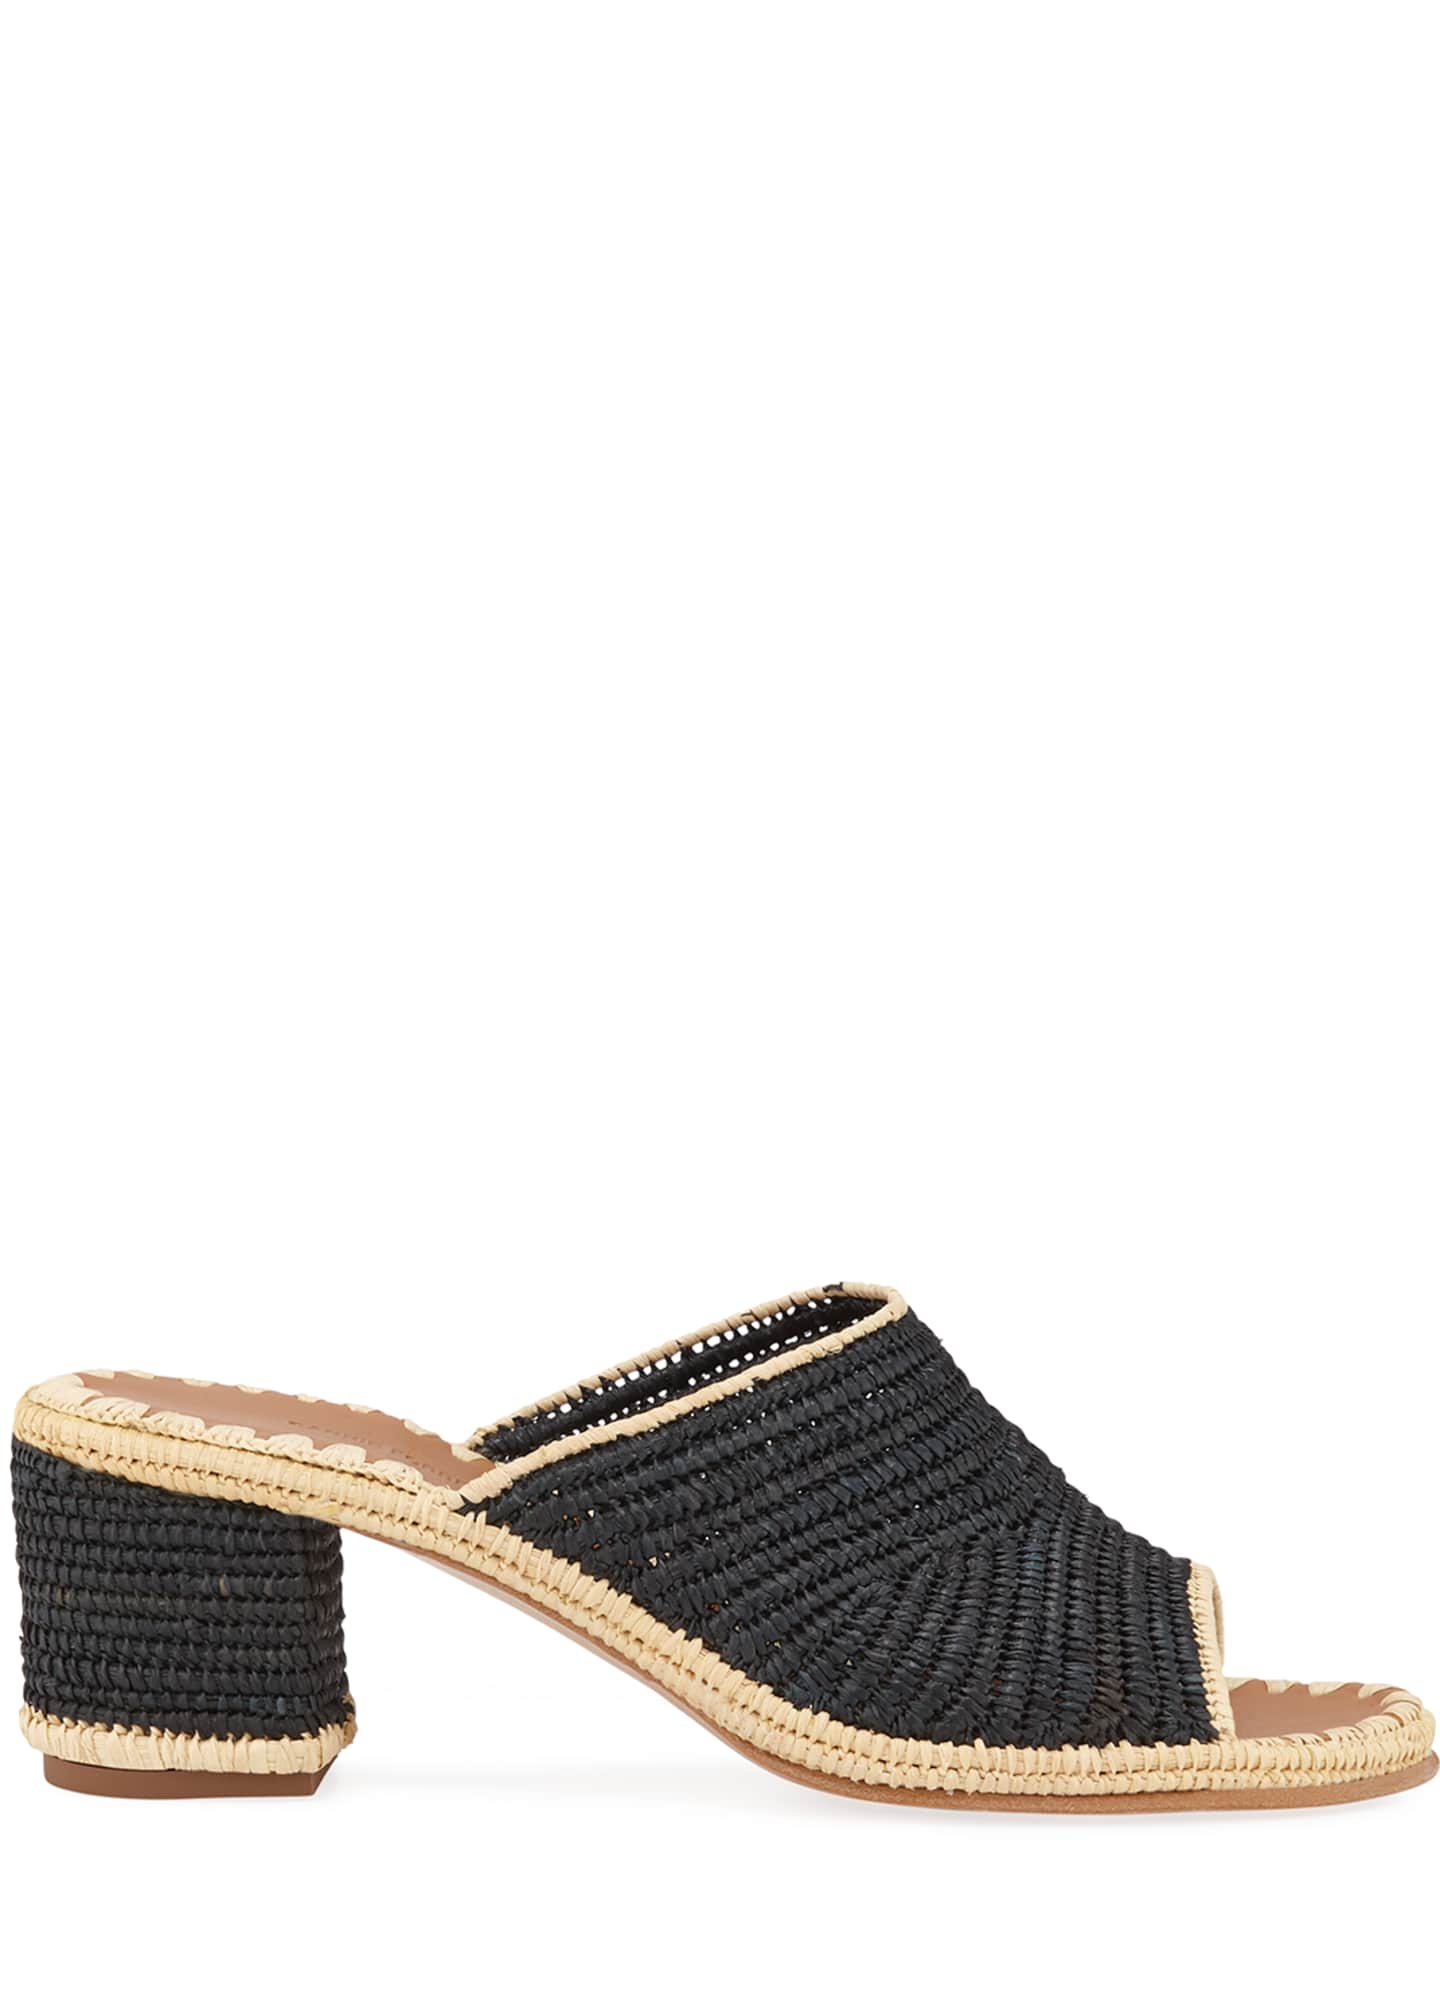 Image 2 of 3: Rama Woven Raffia Slide Sandals